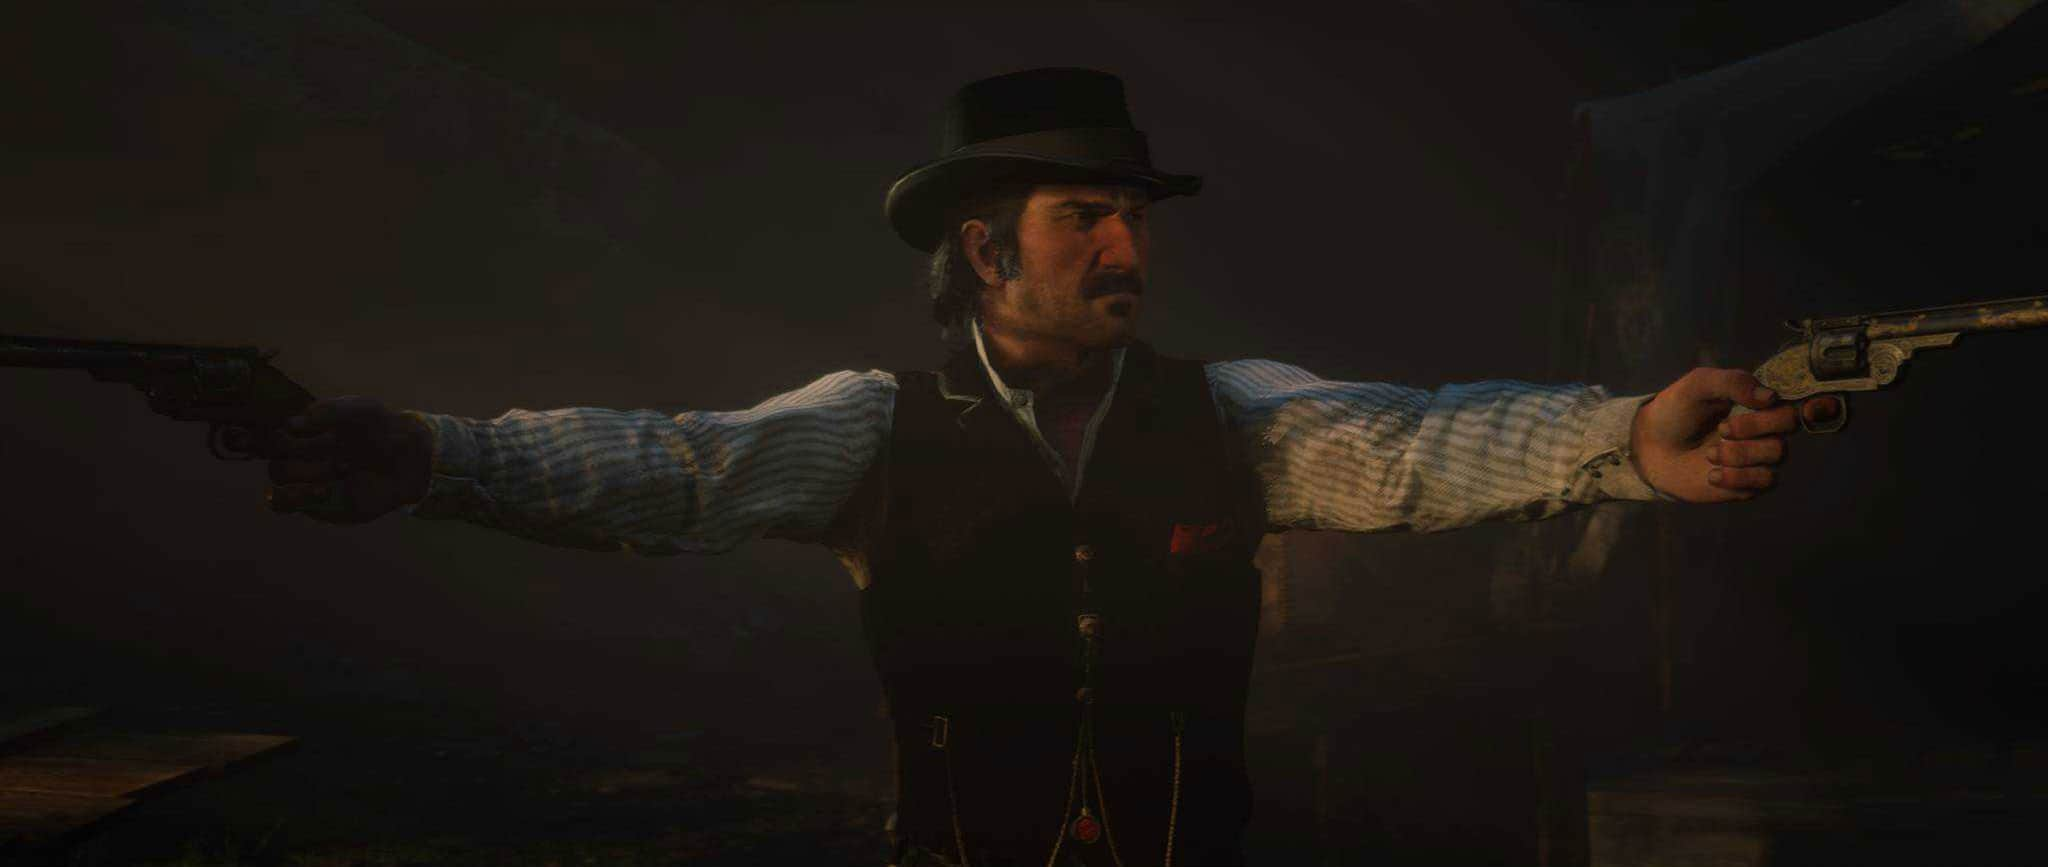 Red Dead Redemption 2 Endings Guide (Spoilers!) - RDR2.org